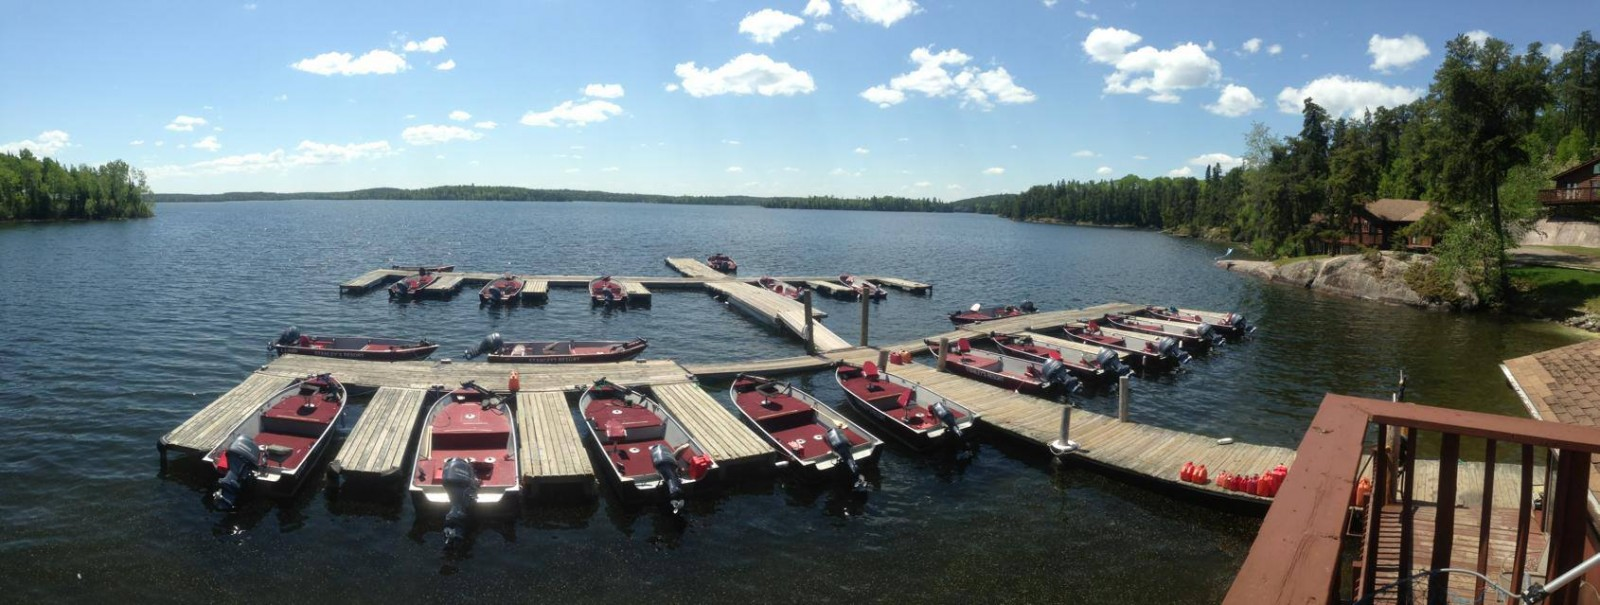 Stanley 39 s resort northwest ontario my canada fishing trip for Ontario canada fishing resorts